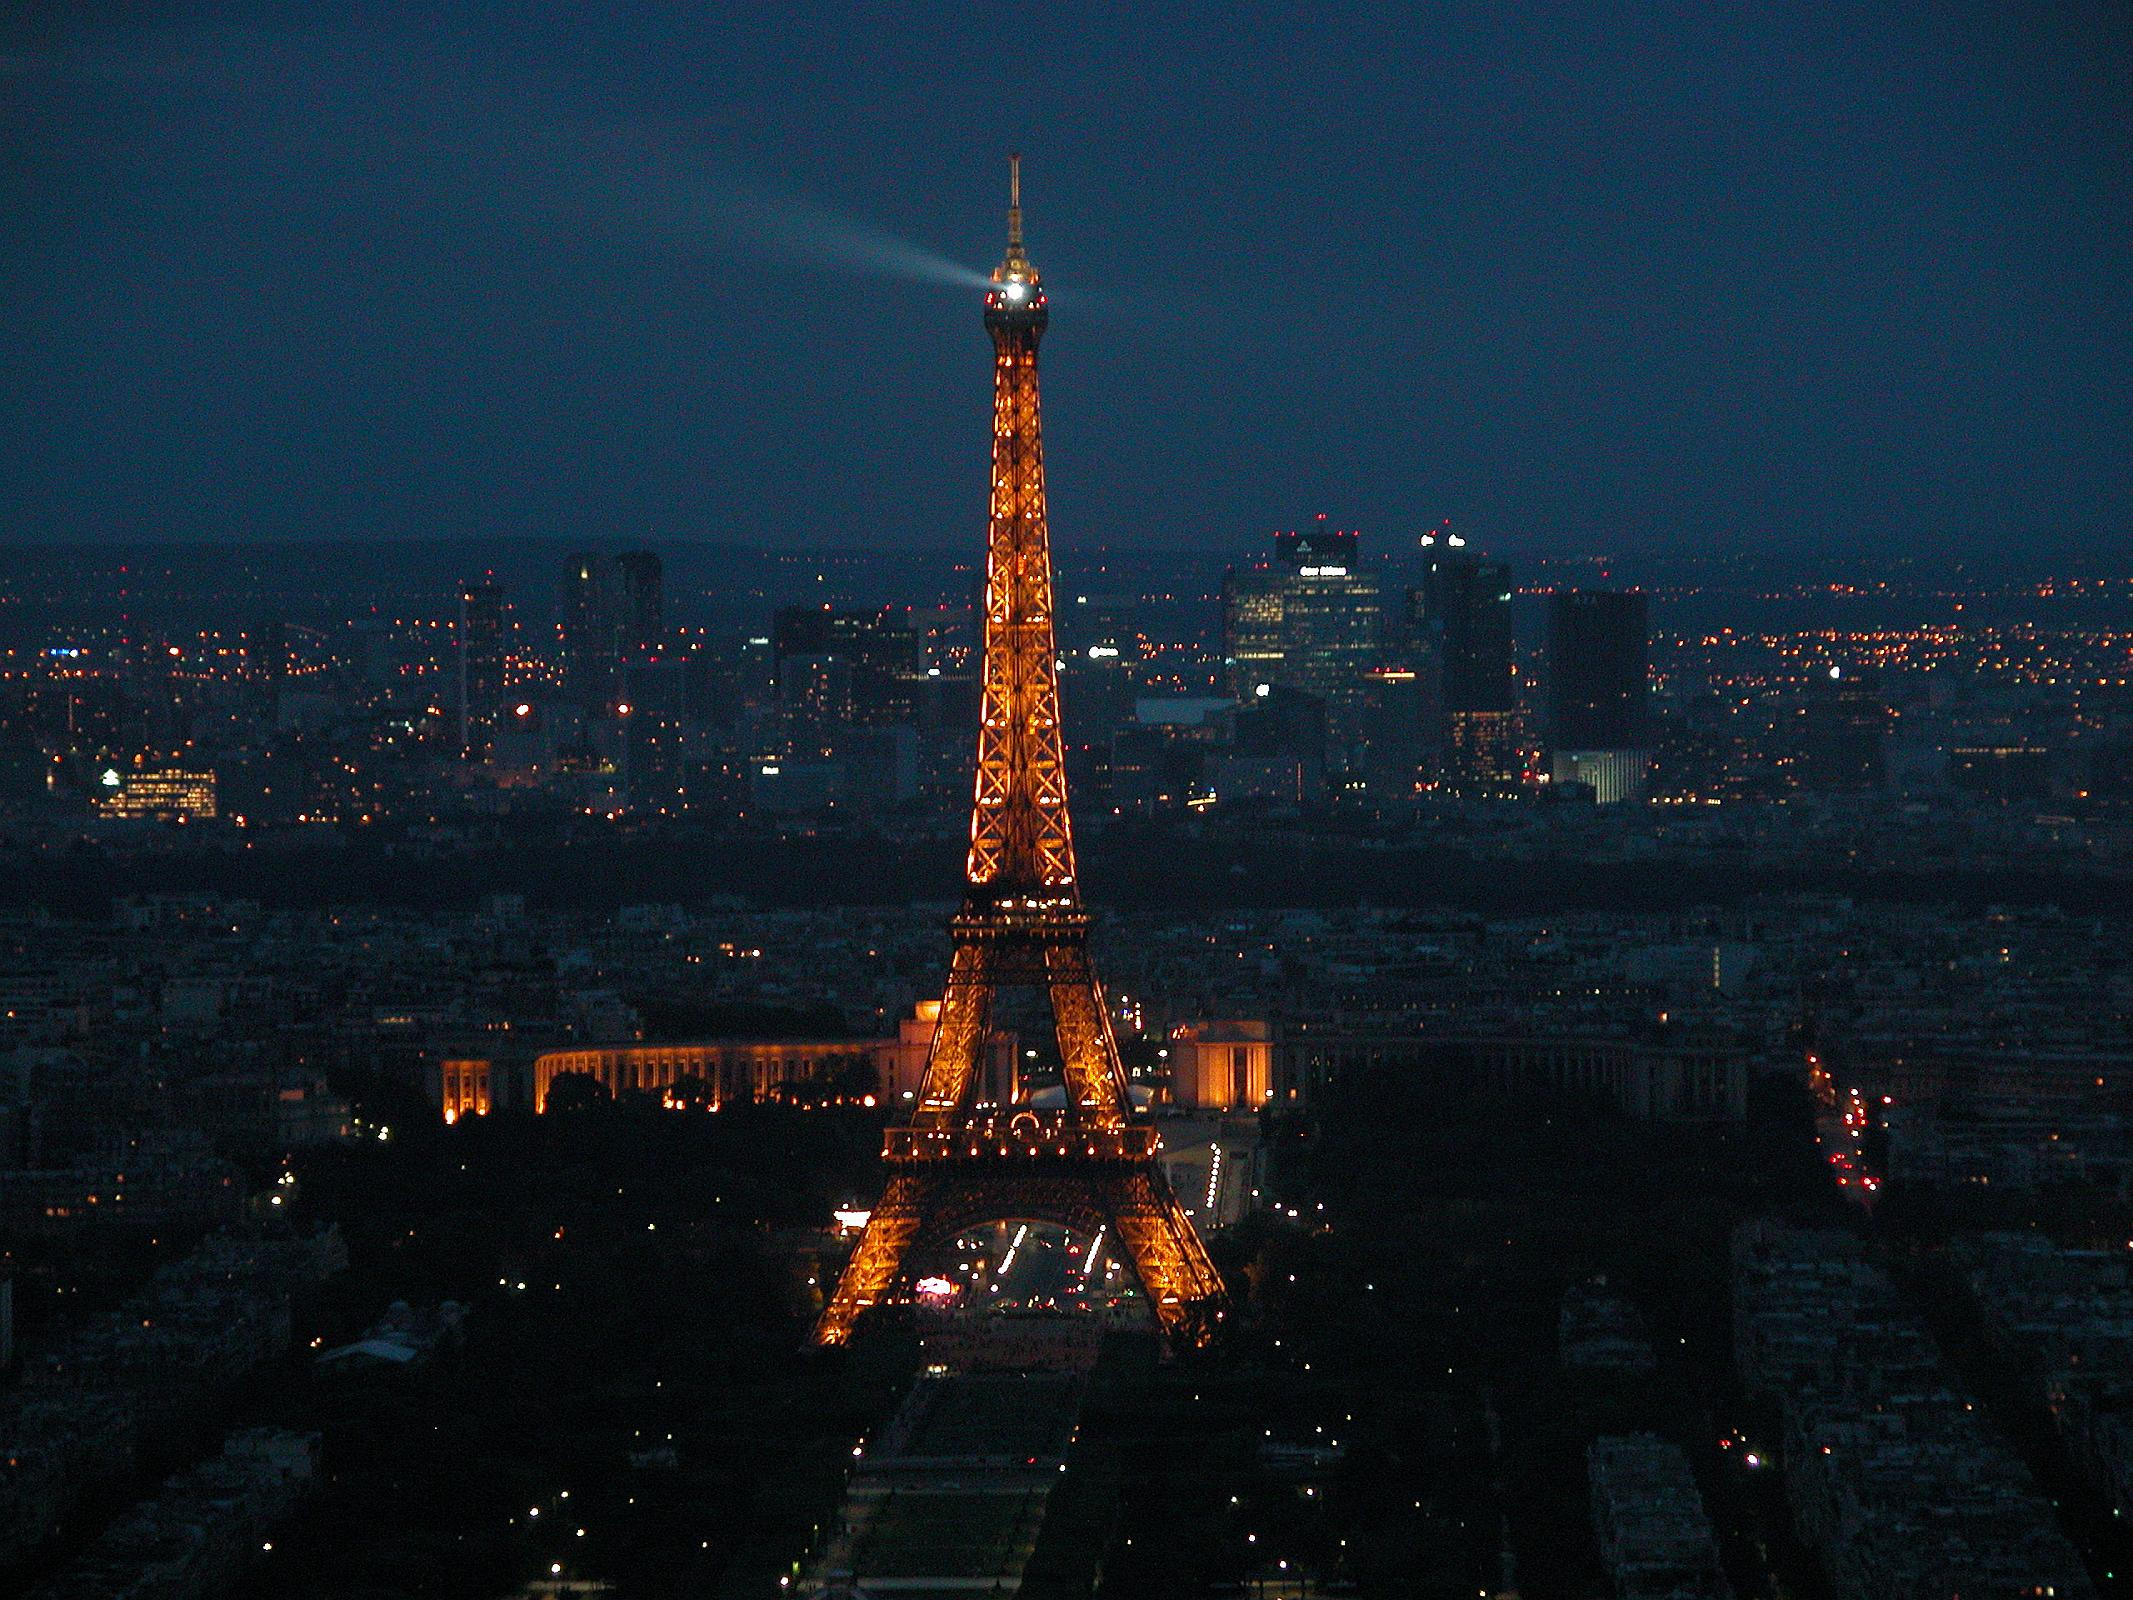 Paris 09 Evening Lights On Eiffel Tower With La Defense Behind From ...